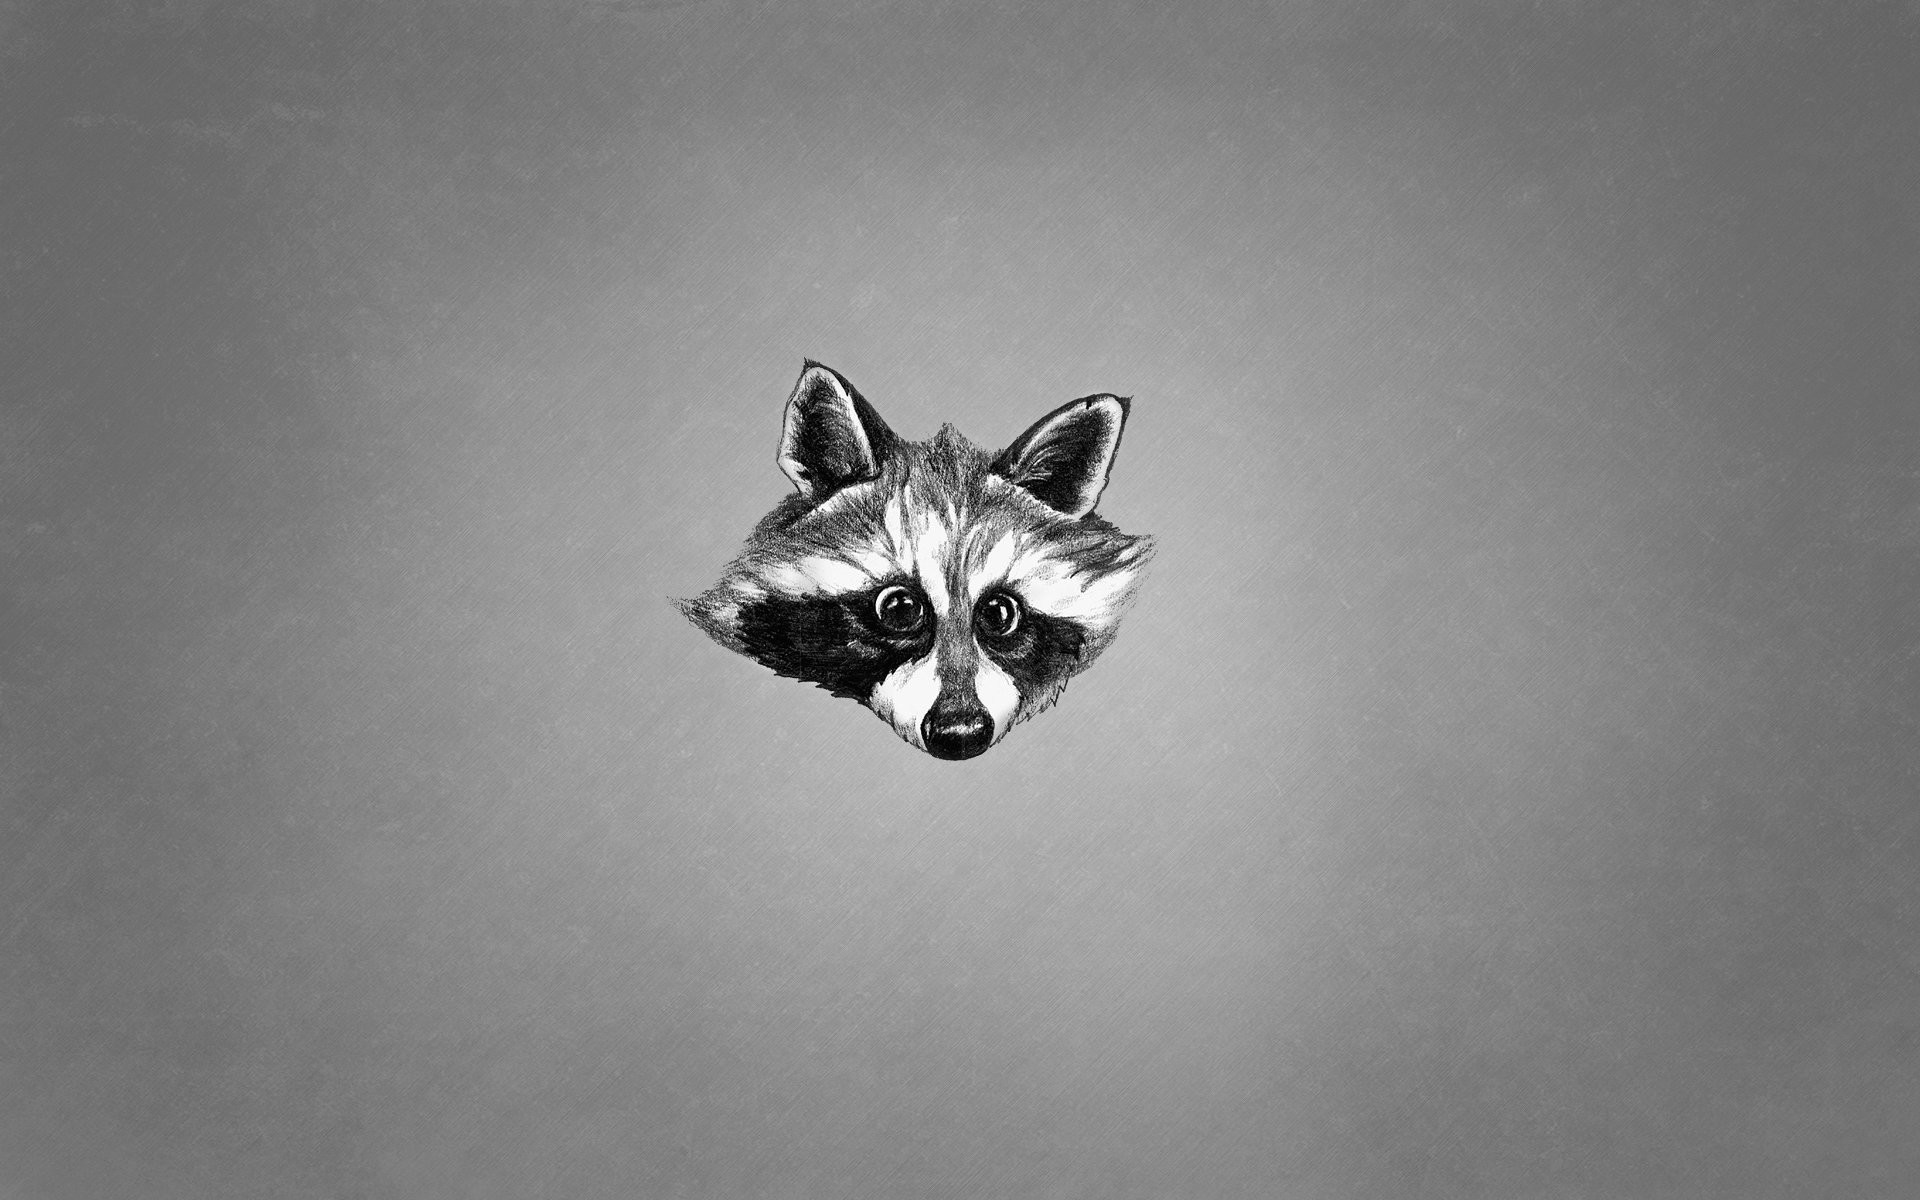 1920x1200 animals face raccoon black and white minimalism raccoon